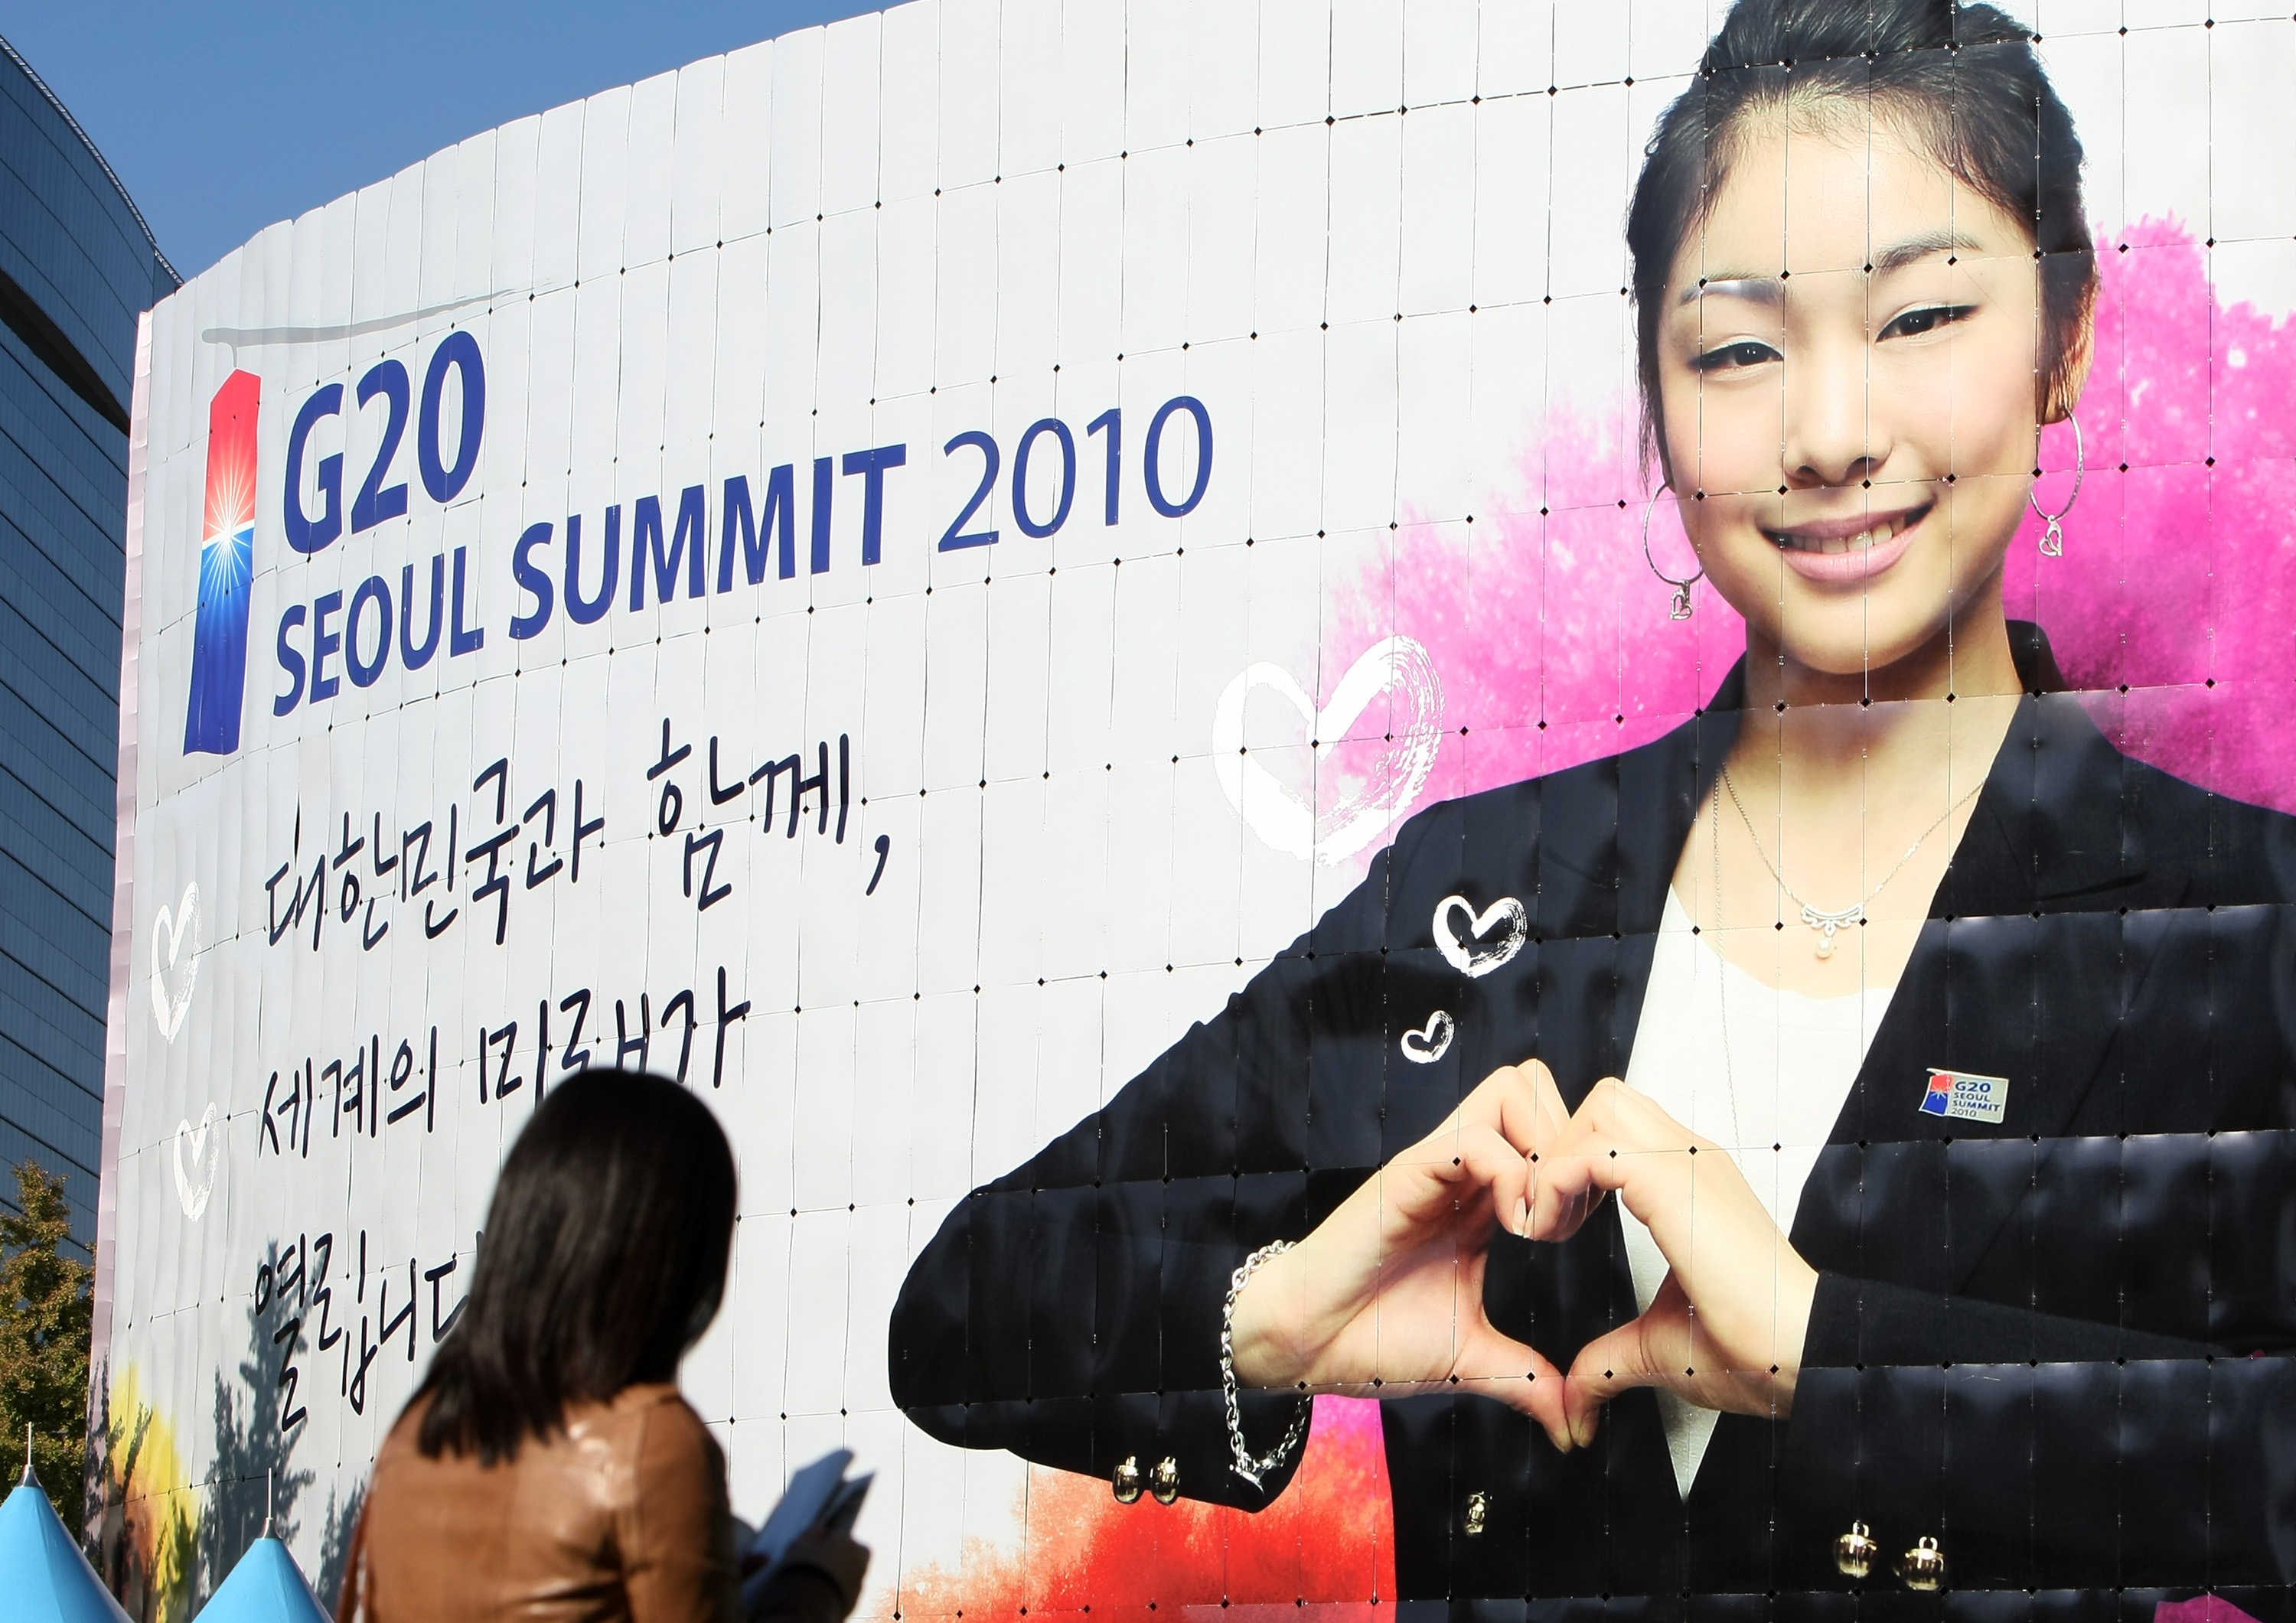 Pedestrians walk past Seoul City Hall, which is covered with a billboard showing a picture of Olympic figure skating gold medalist Kim Yuna, for the Group of 20 (G-20) summit in Seoul, South Korea, on Saturday, Oct. 30, 2010. Photographer: SeongJoon Cho/Bloomberg via Getty Images